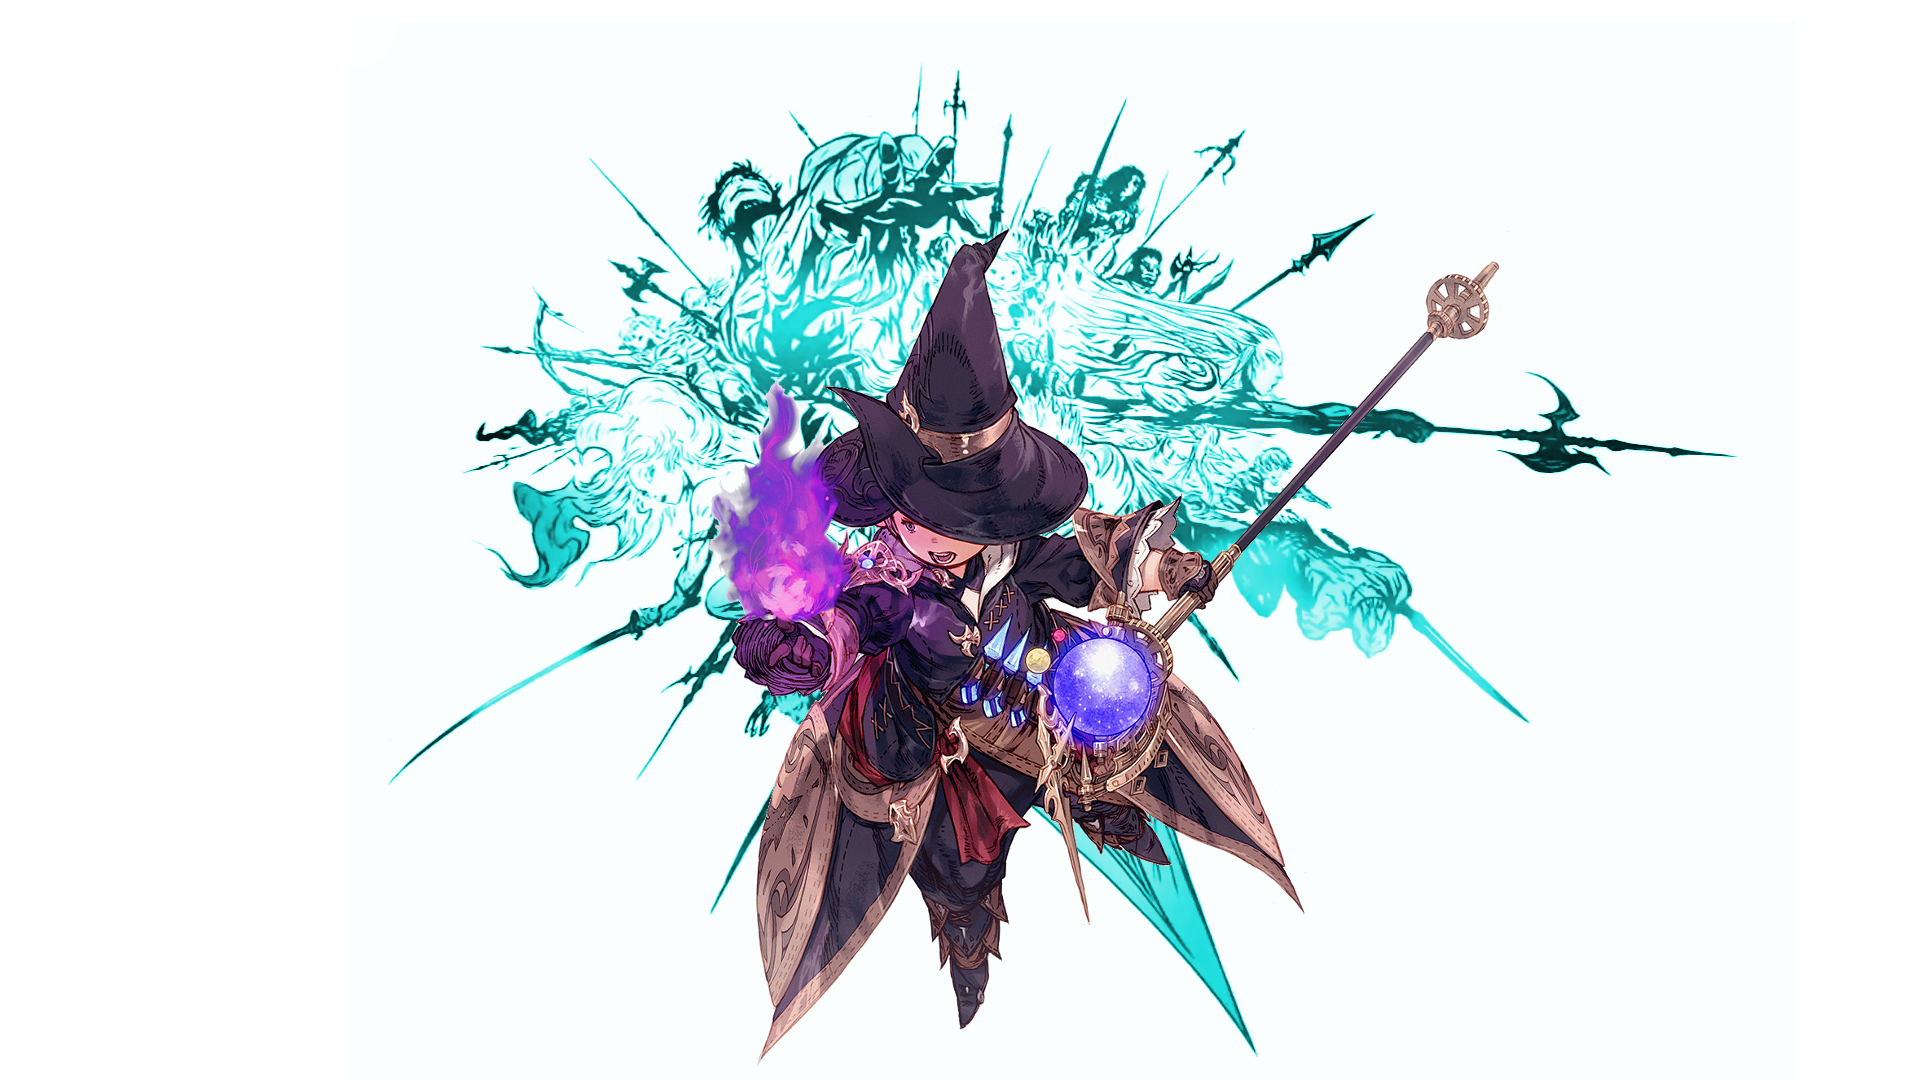 sonomaa ffxiv reddit from source wallpapers stole these